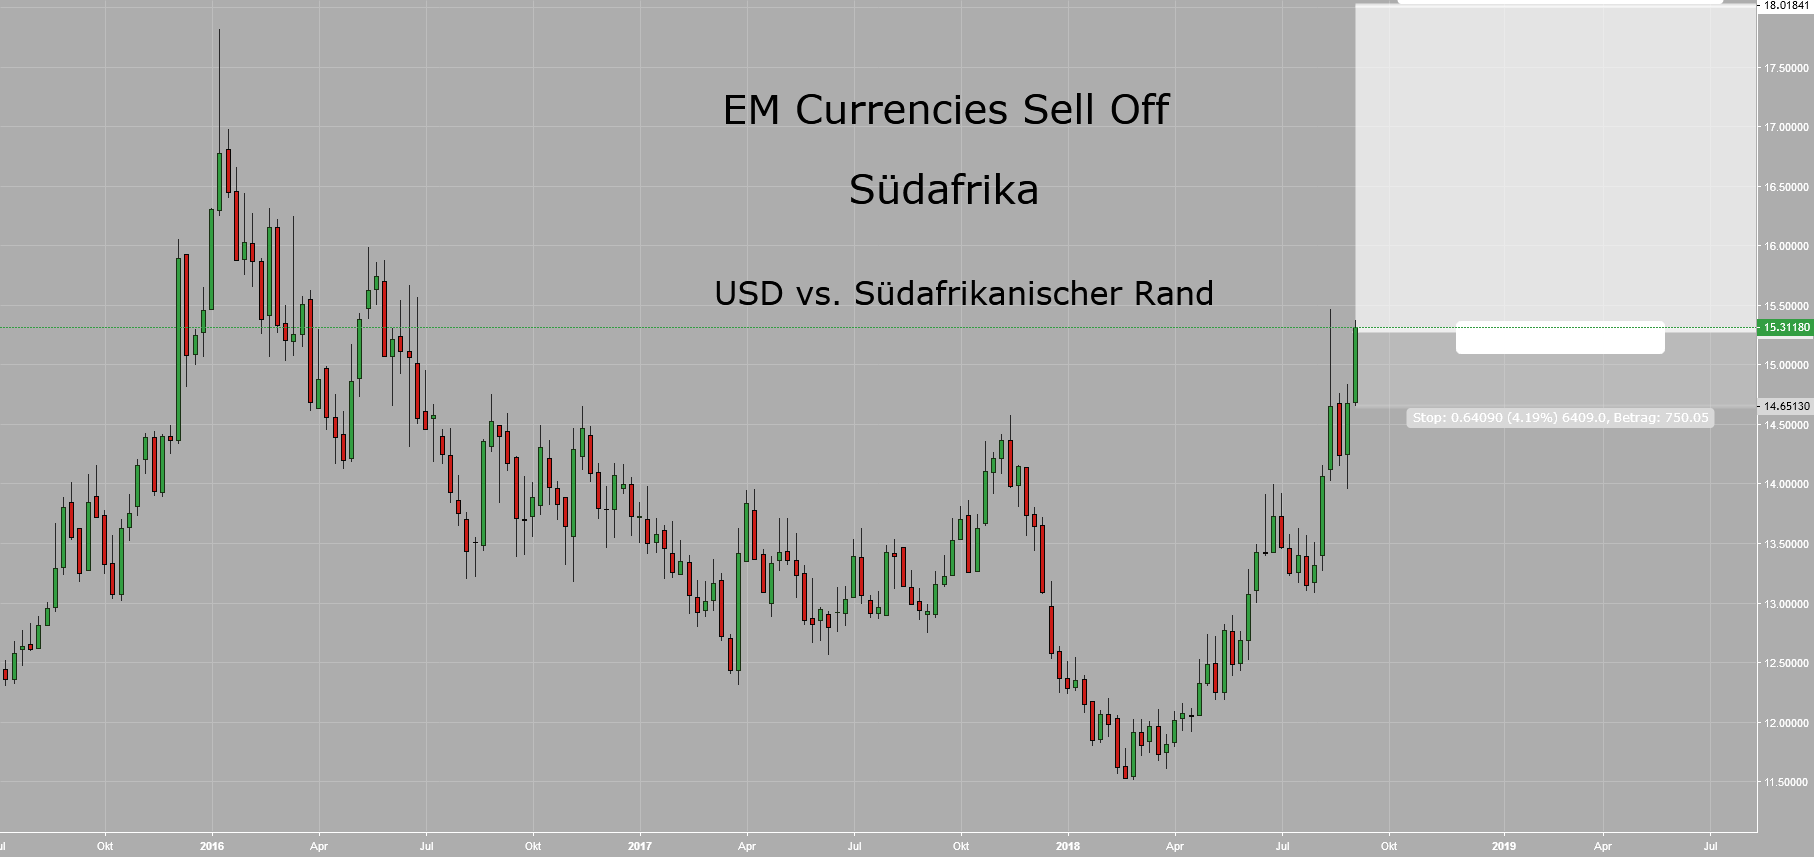 EM Currencies Sell Off III - Afrika I: South African Rand